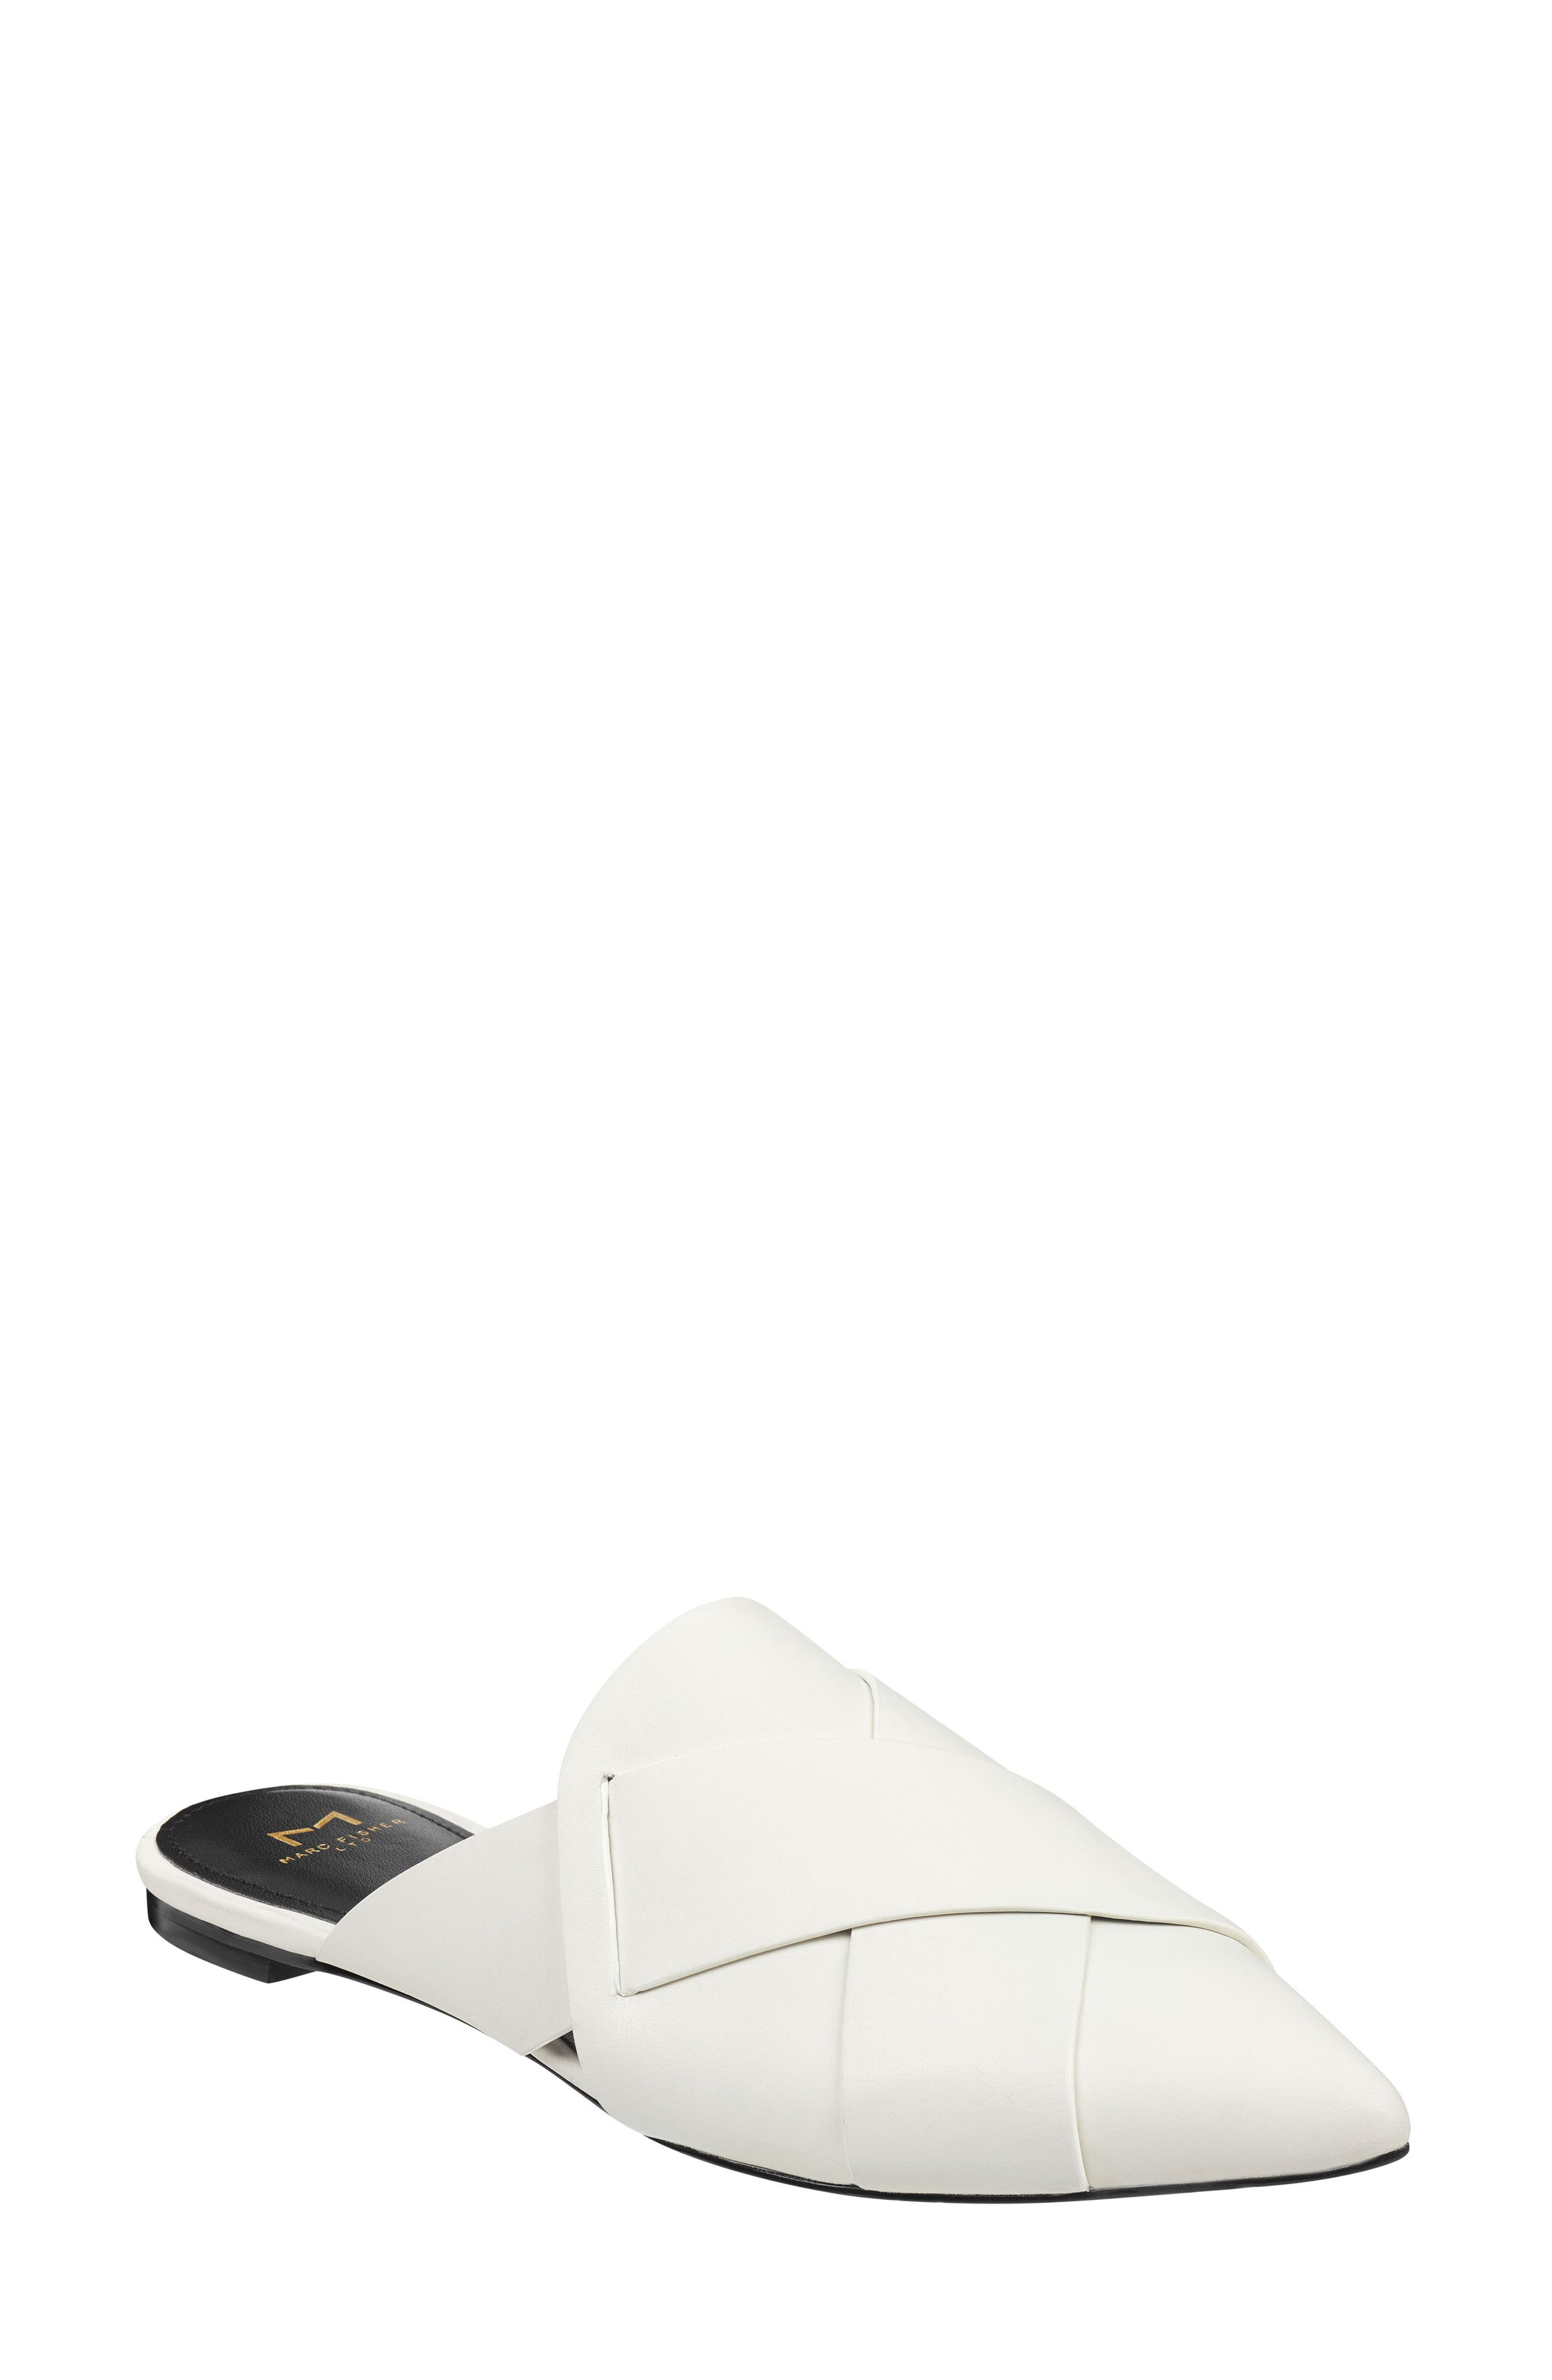 Sono Pointy Toe Mule,                             Main thumbnail 1, color,                             CHIC CREAM LEATHER